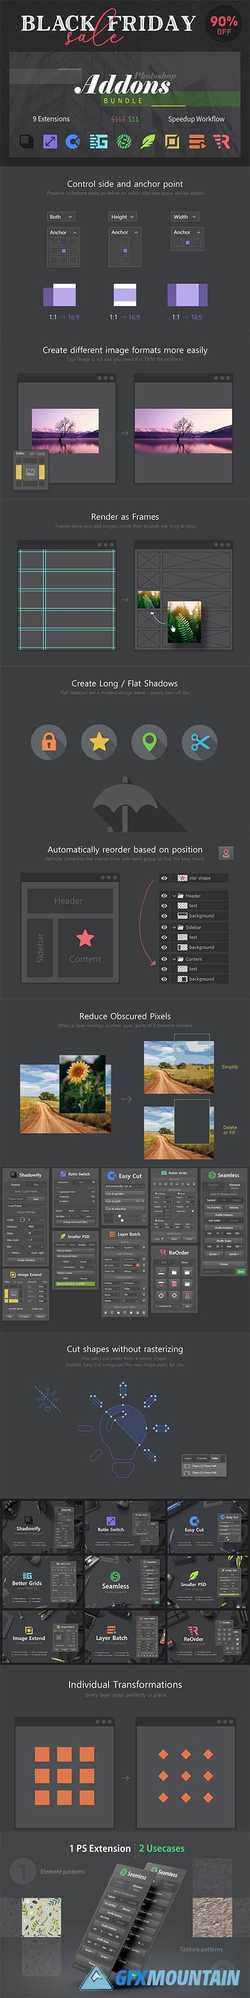 Photoshop Add-Ons Bundle 4342434